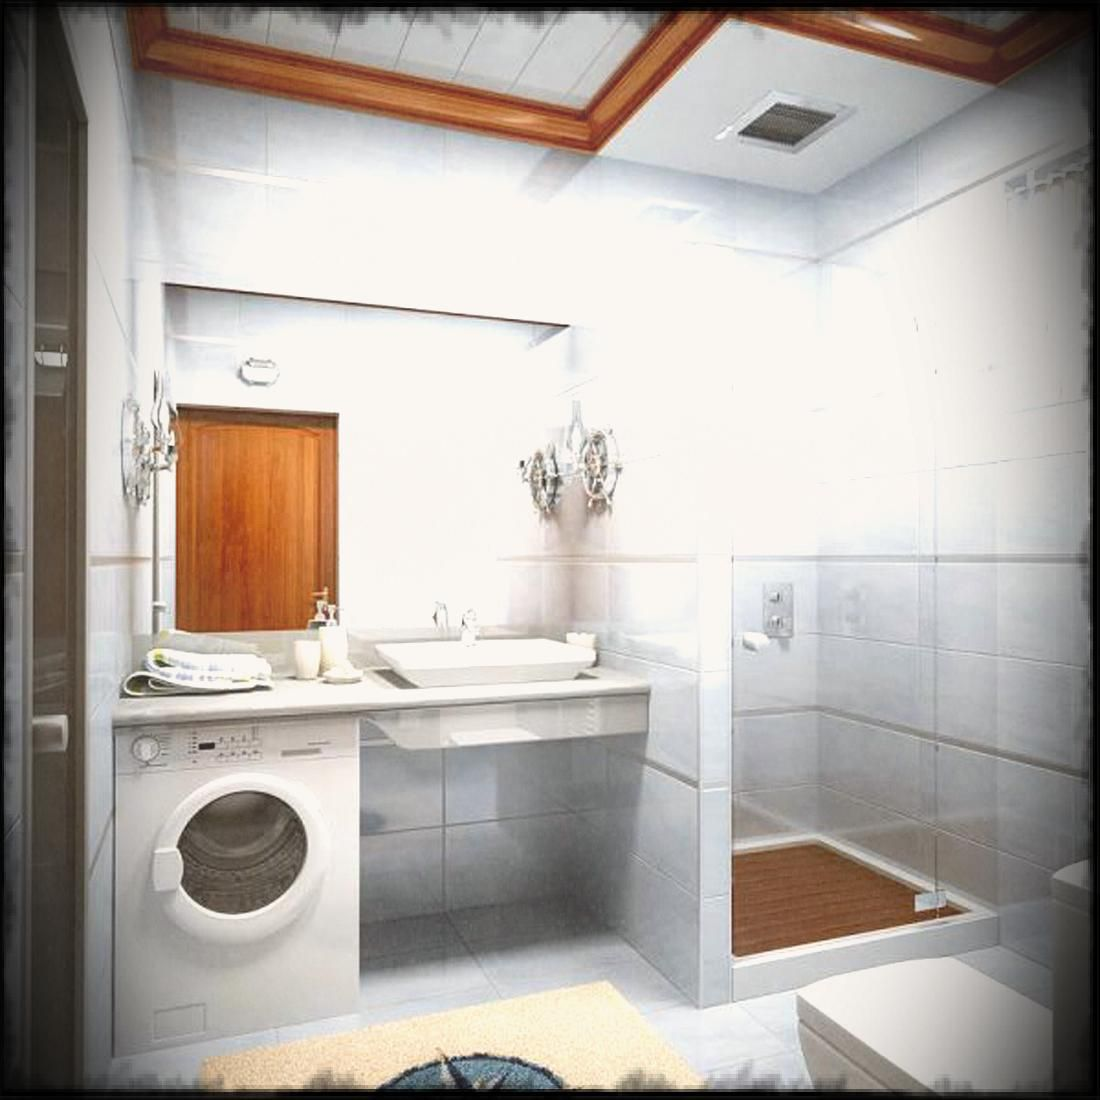 Small Bathroom Remodel With White Wash Machine Also Glass ... on Small Space Small Bathroom Ideas With Washing Machine id=42416